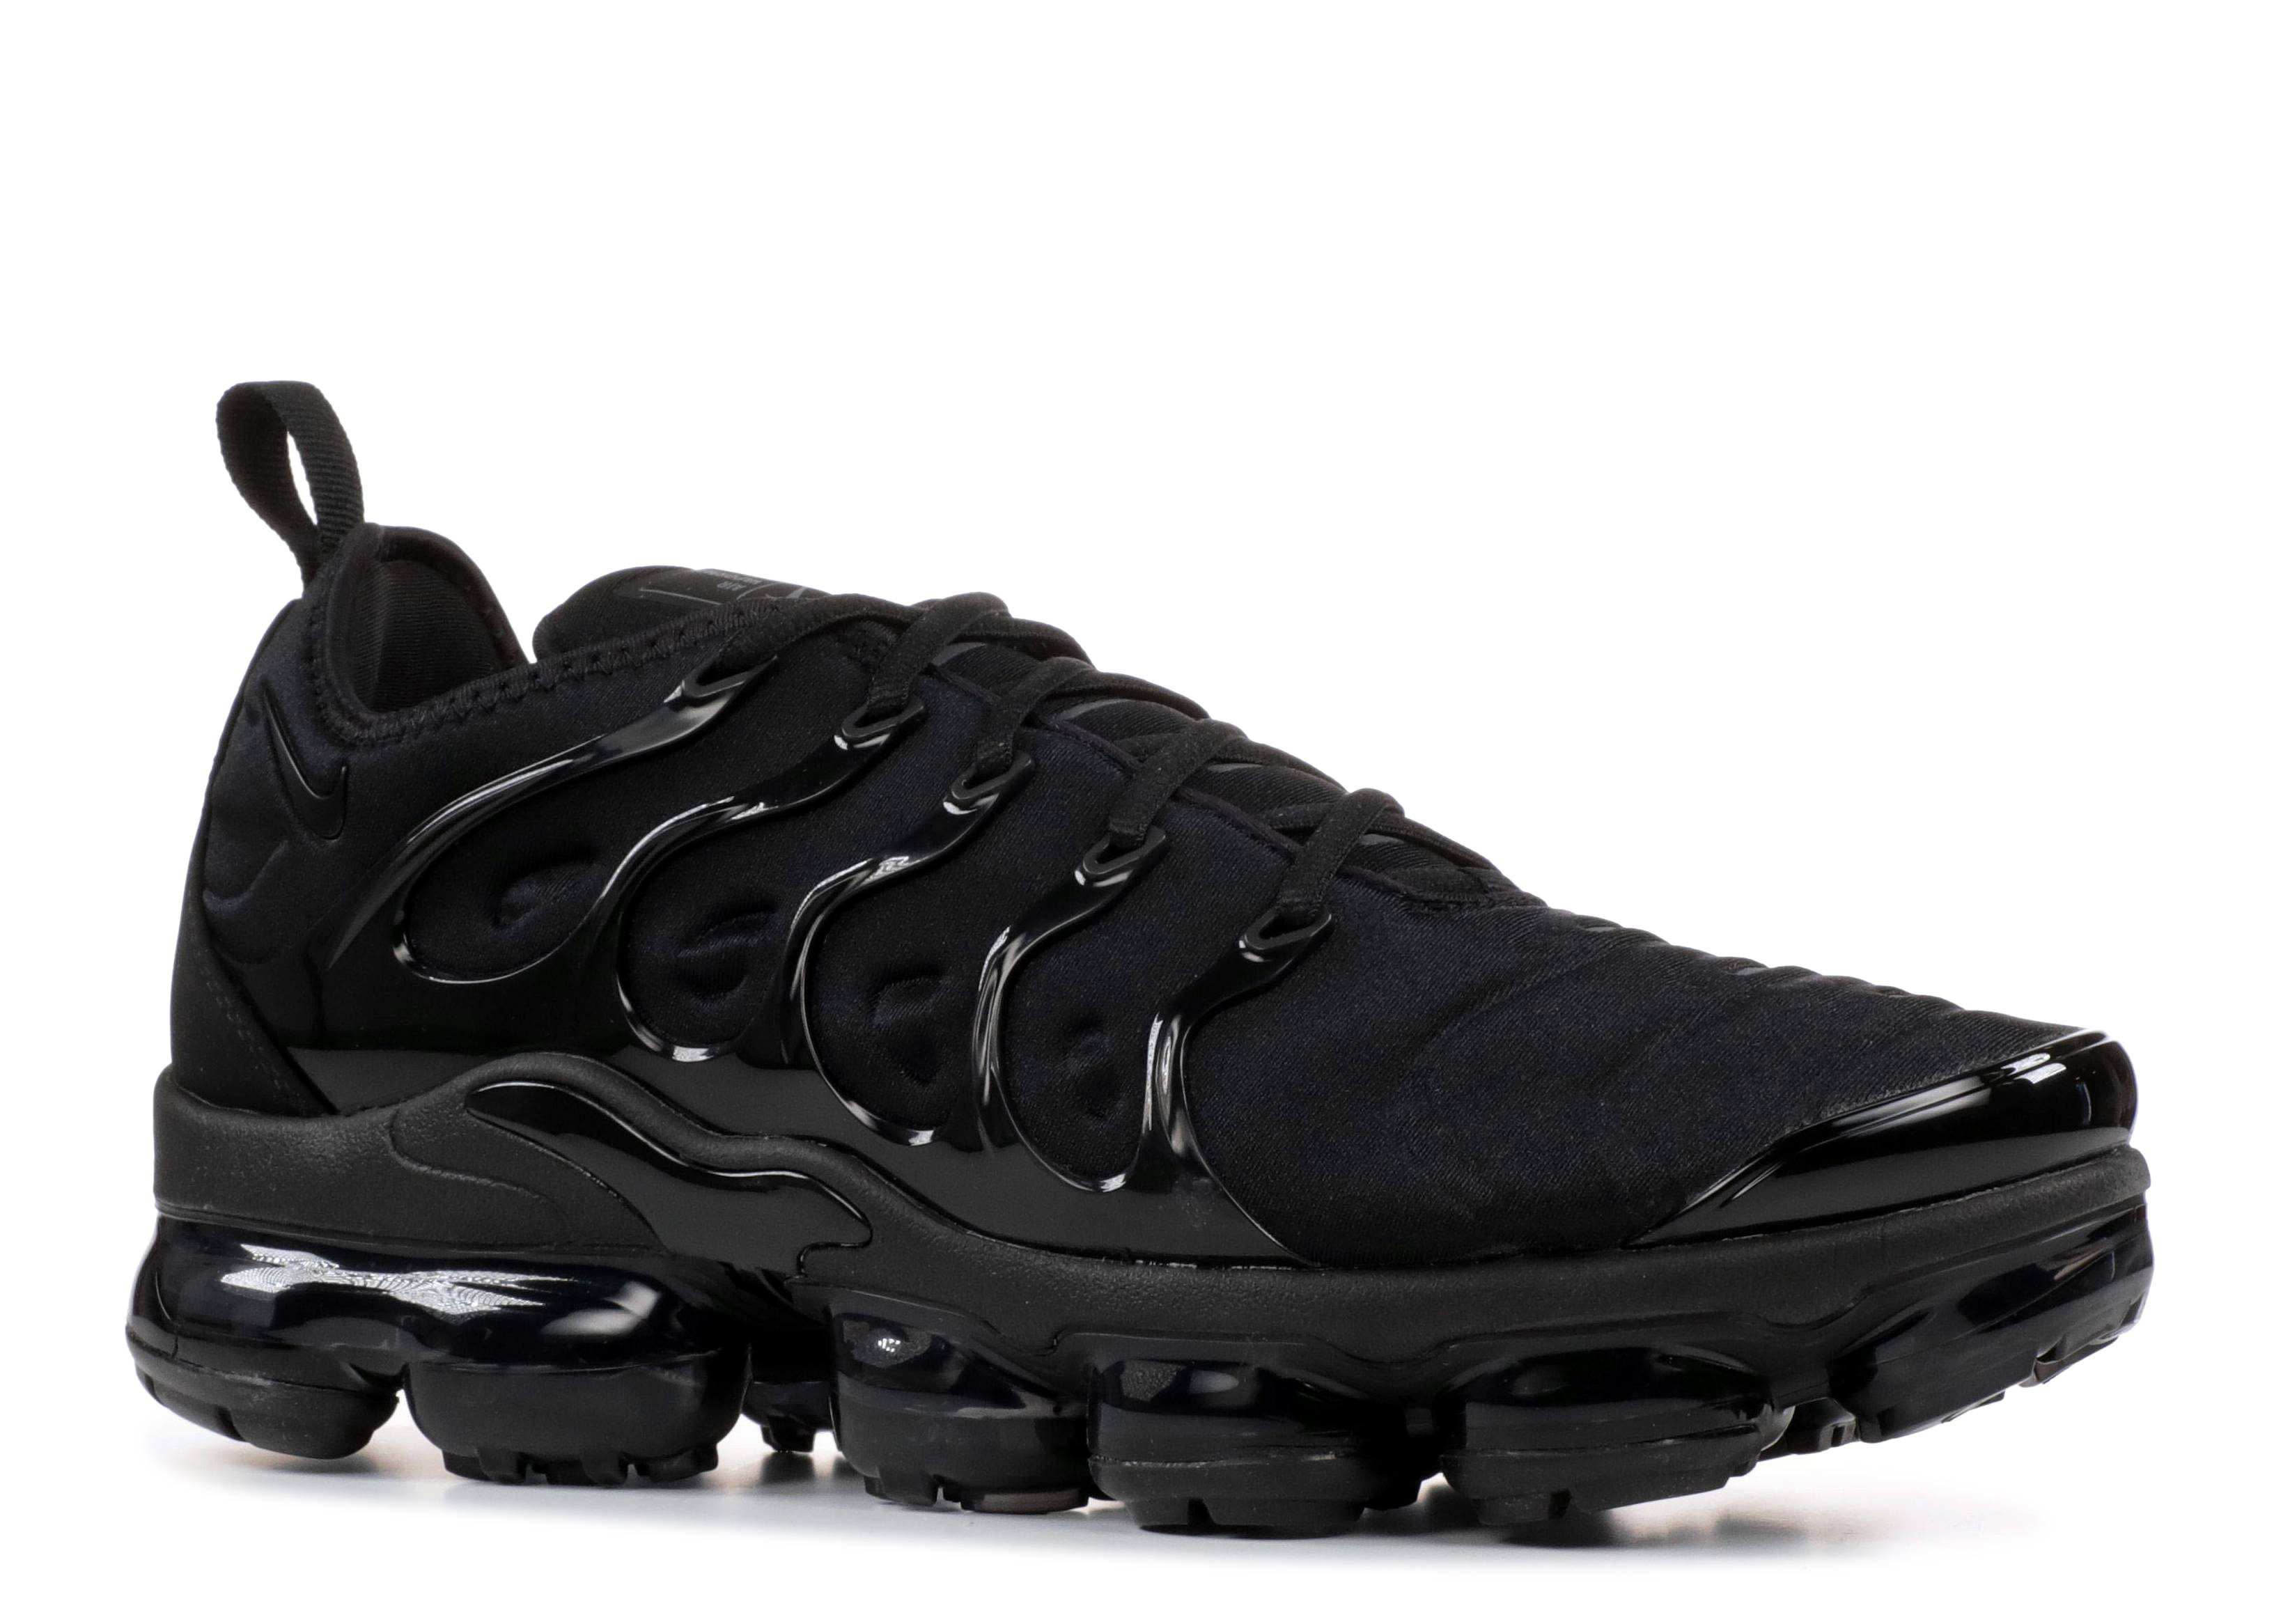 ad12fbc19477 Nike Air VaporMax Plus Triple Black - 2